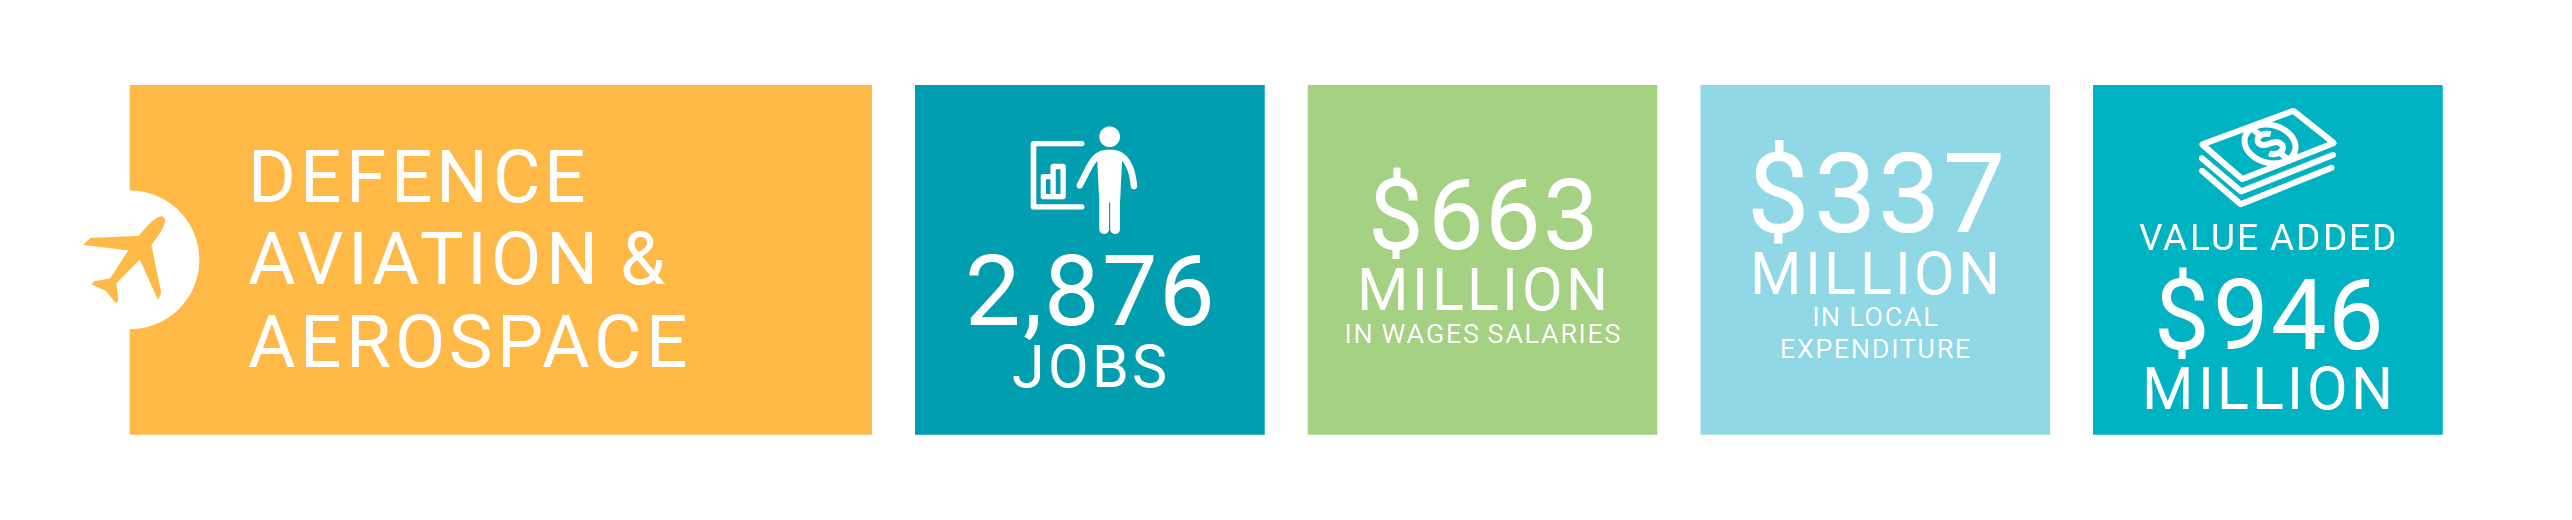 Defence, aviation and aerospace delivers 2876 jobs, $663 million in wages and salaries, $337 million in local expenditure and $946 million value added.